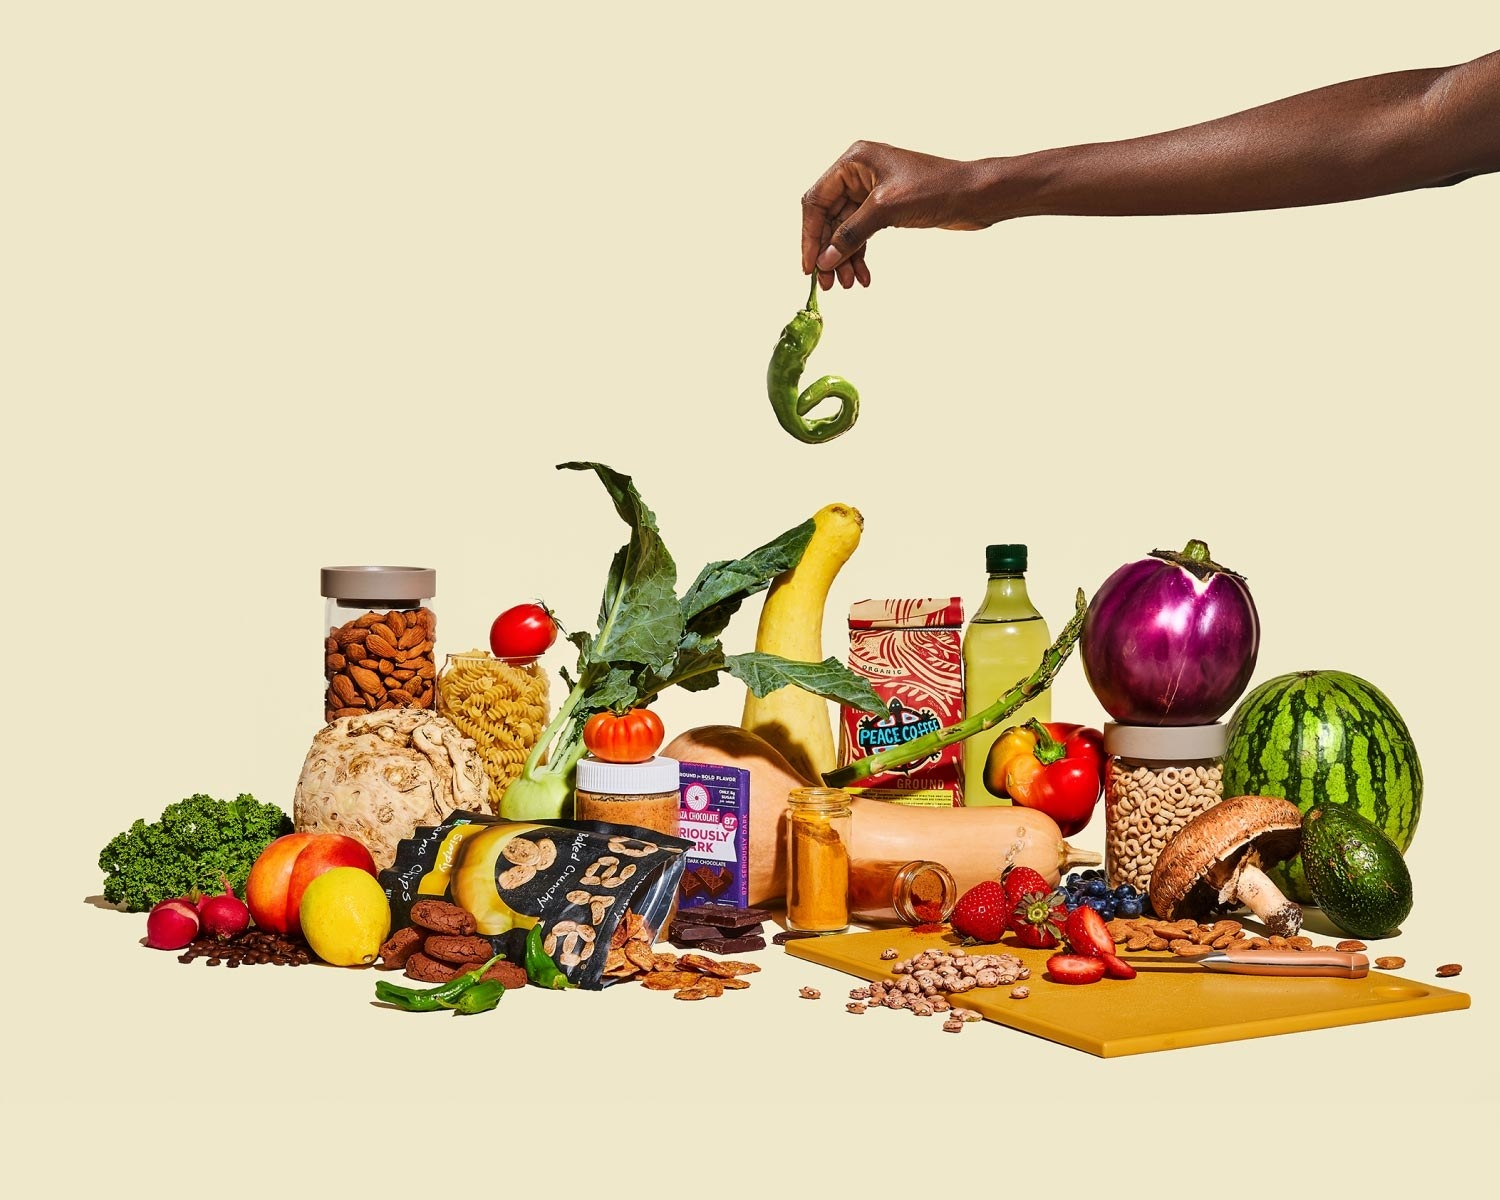 a hand plucks a pepper out of a pile of veggies and pantry staples